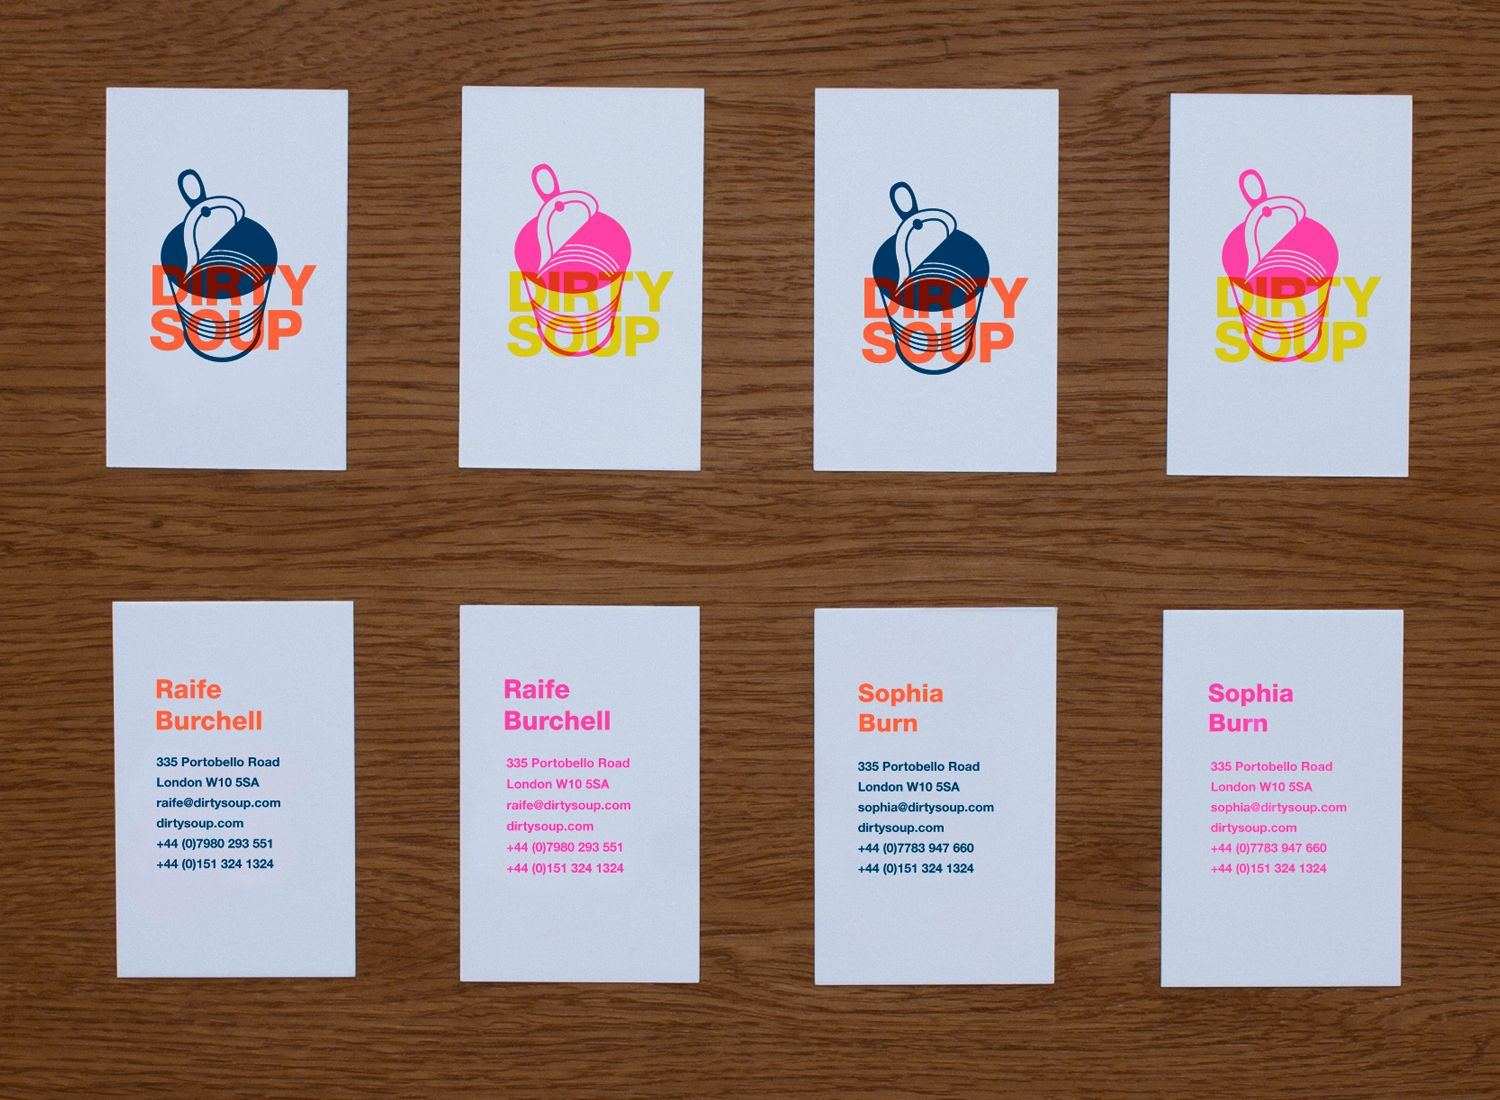 Dirty soup brand risograph printing brand and website for dirty dirty soup brand risograph printing brand and website for dirty soup a music sync reheart Choice Image